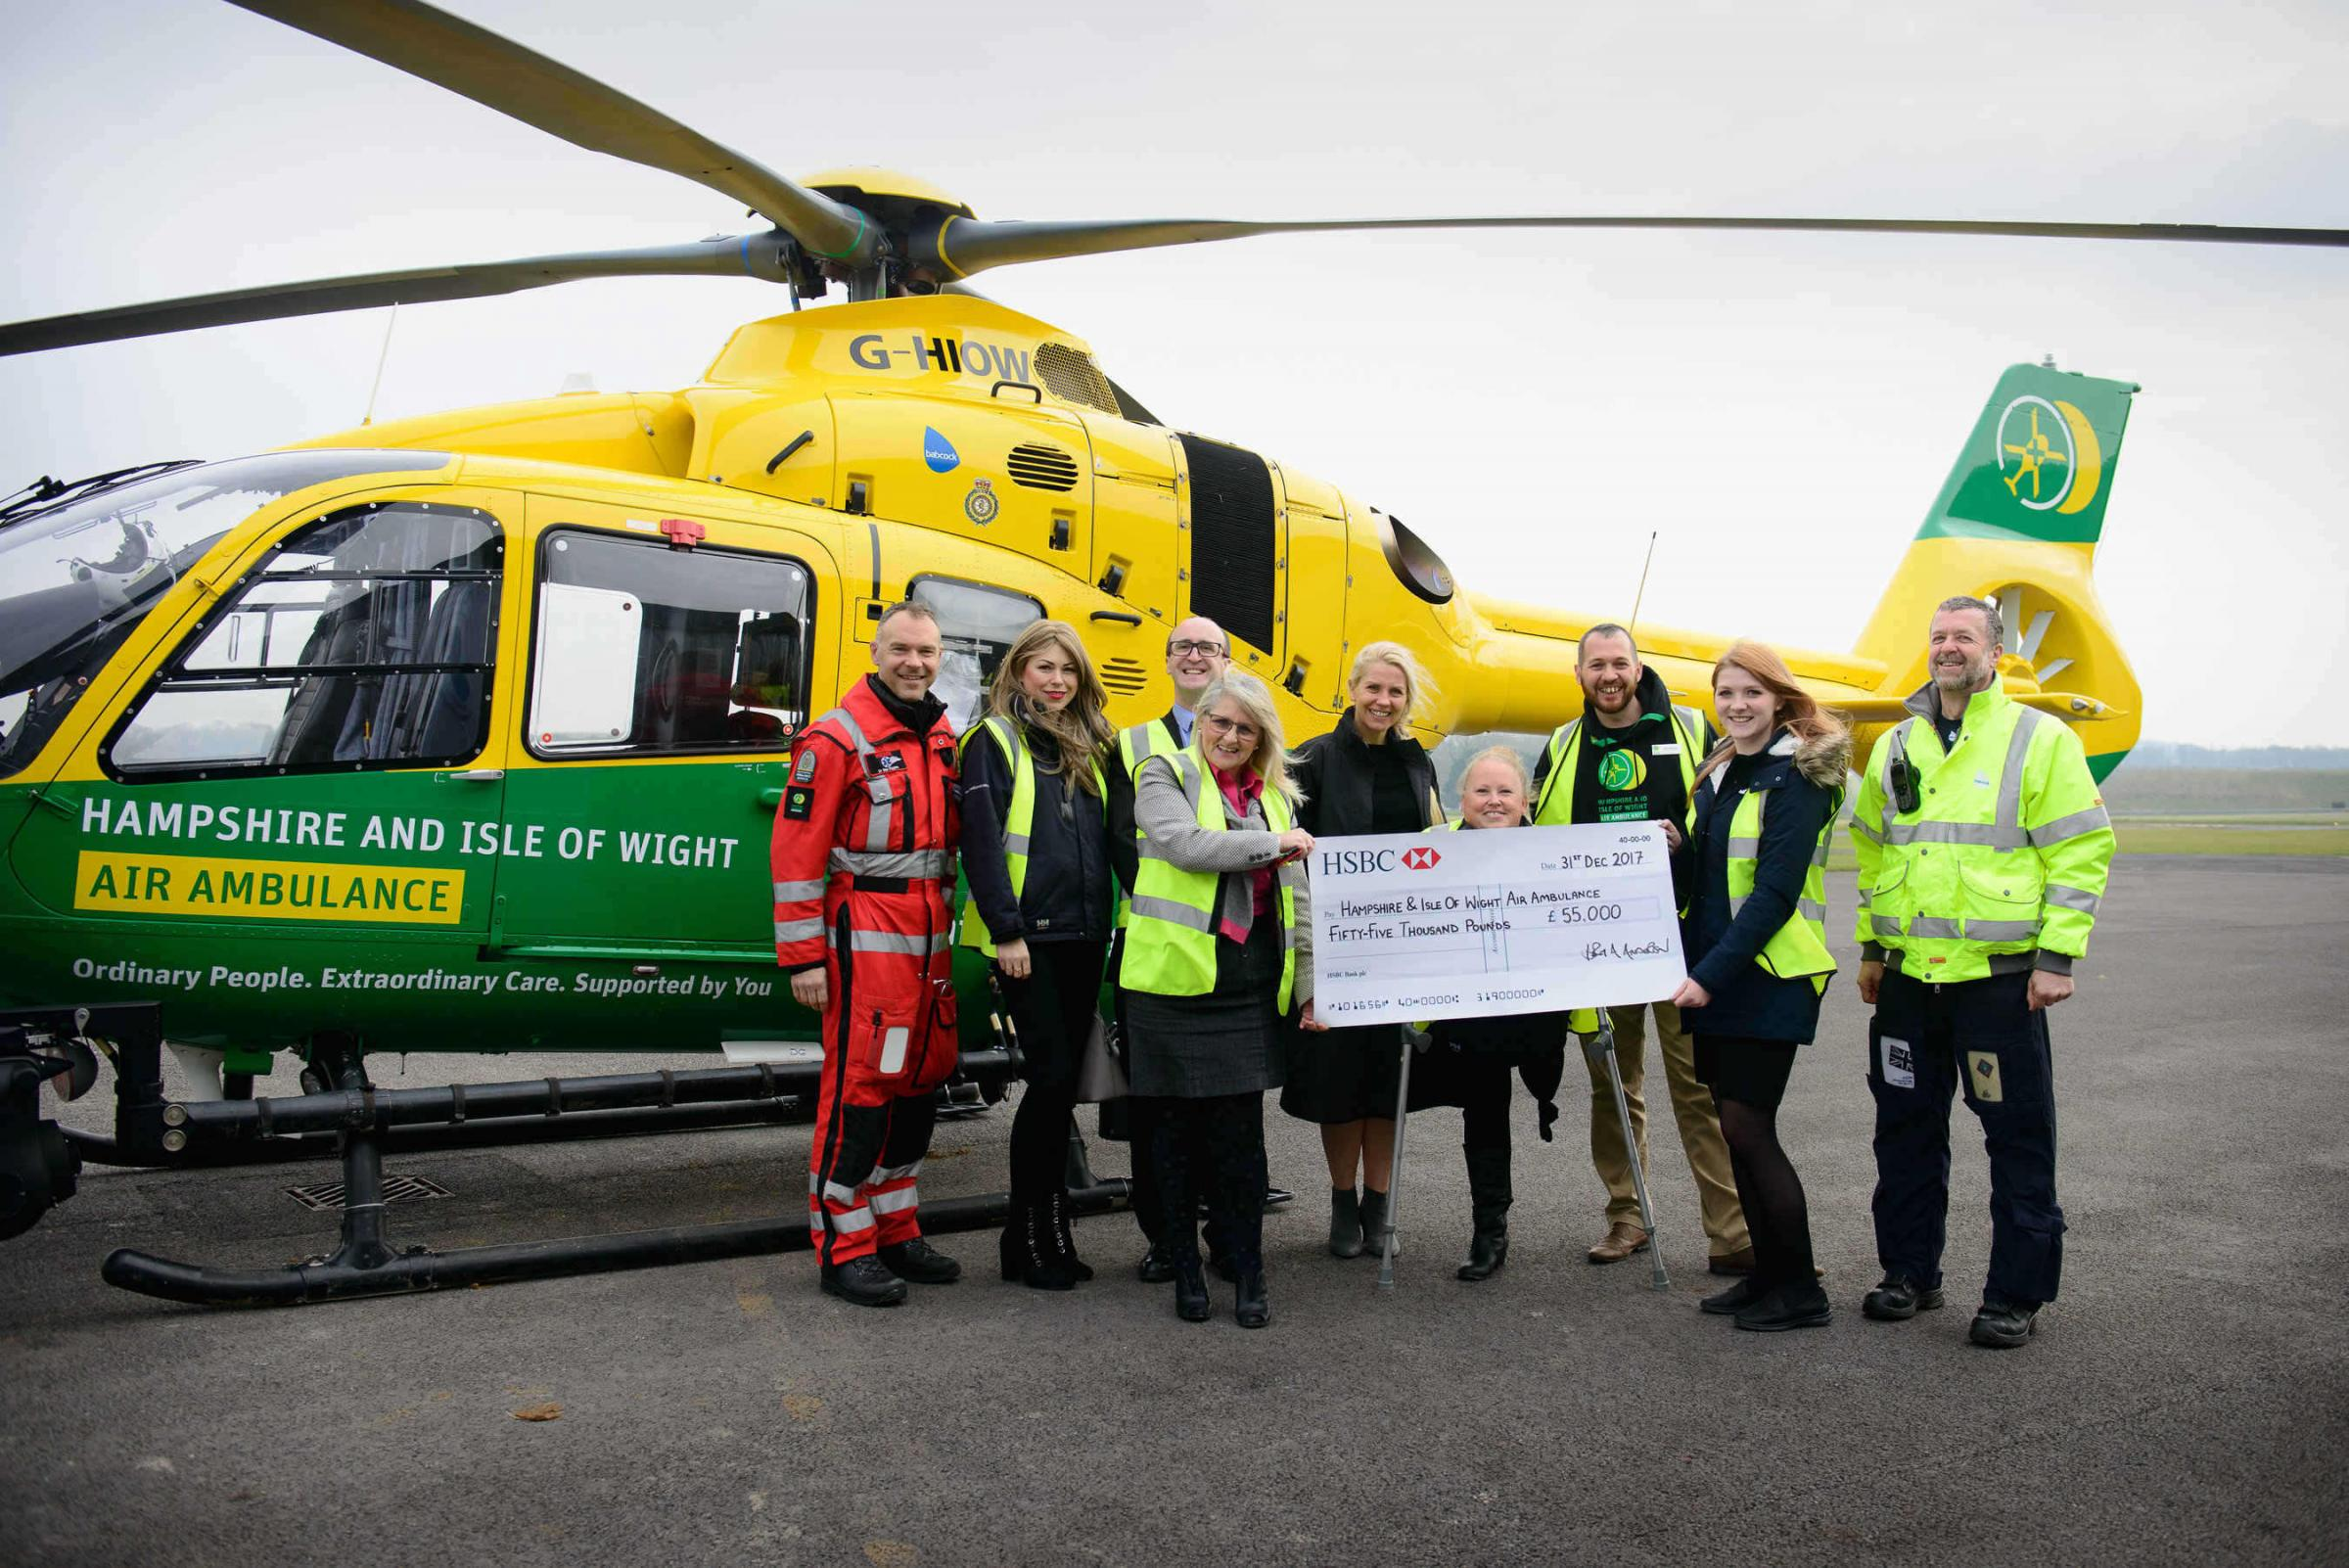 Red Funnel staff present a cheque to the Hampshire and Isle of Wigh Air Ambulance